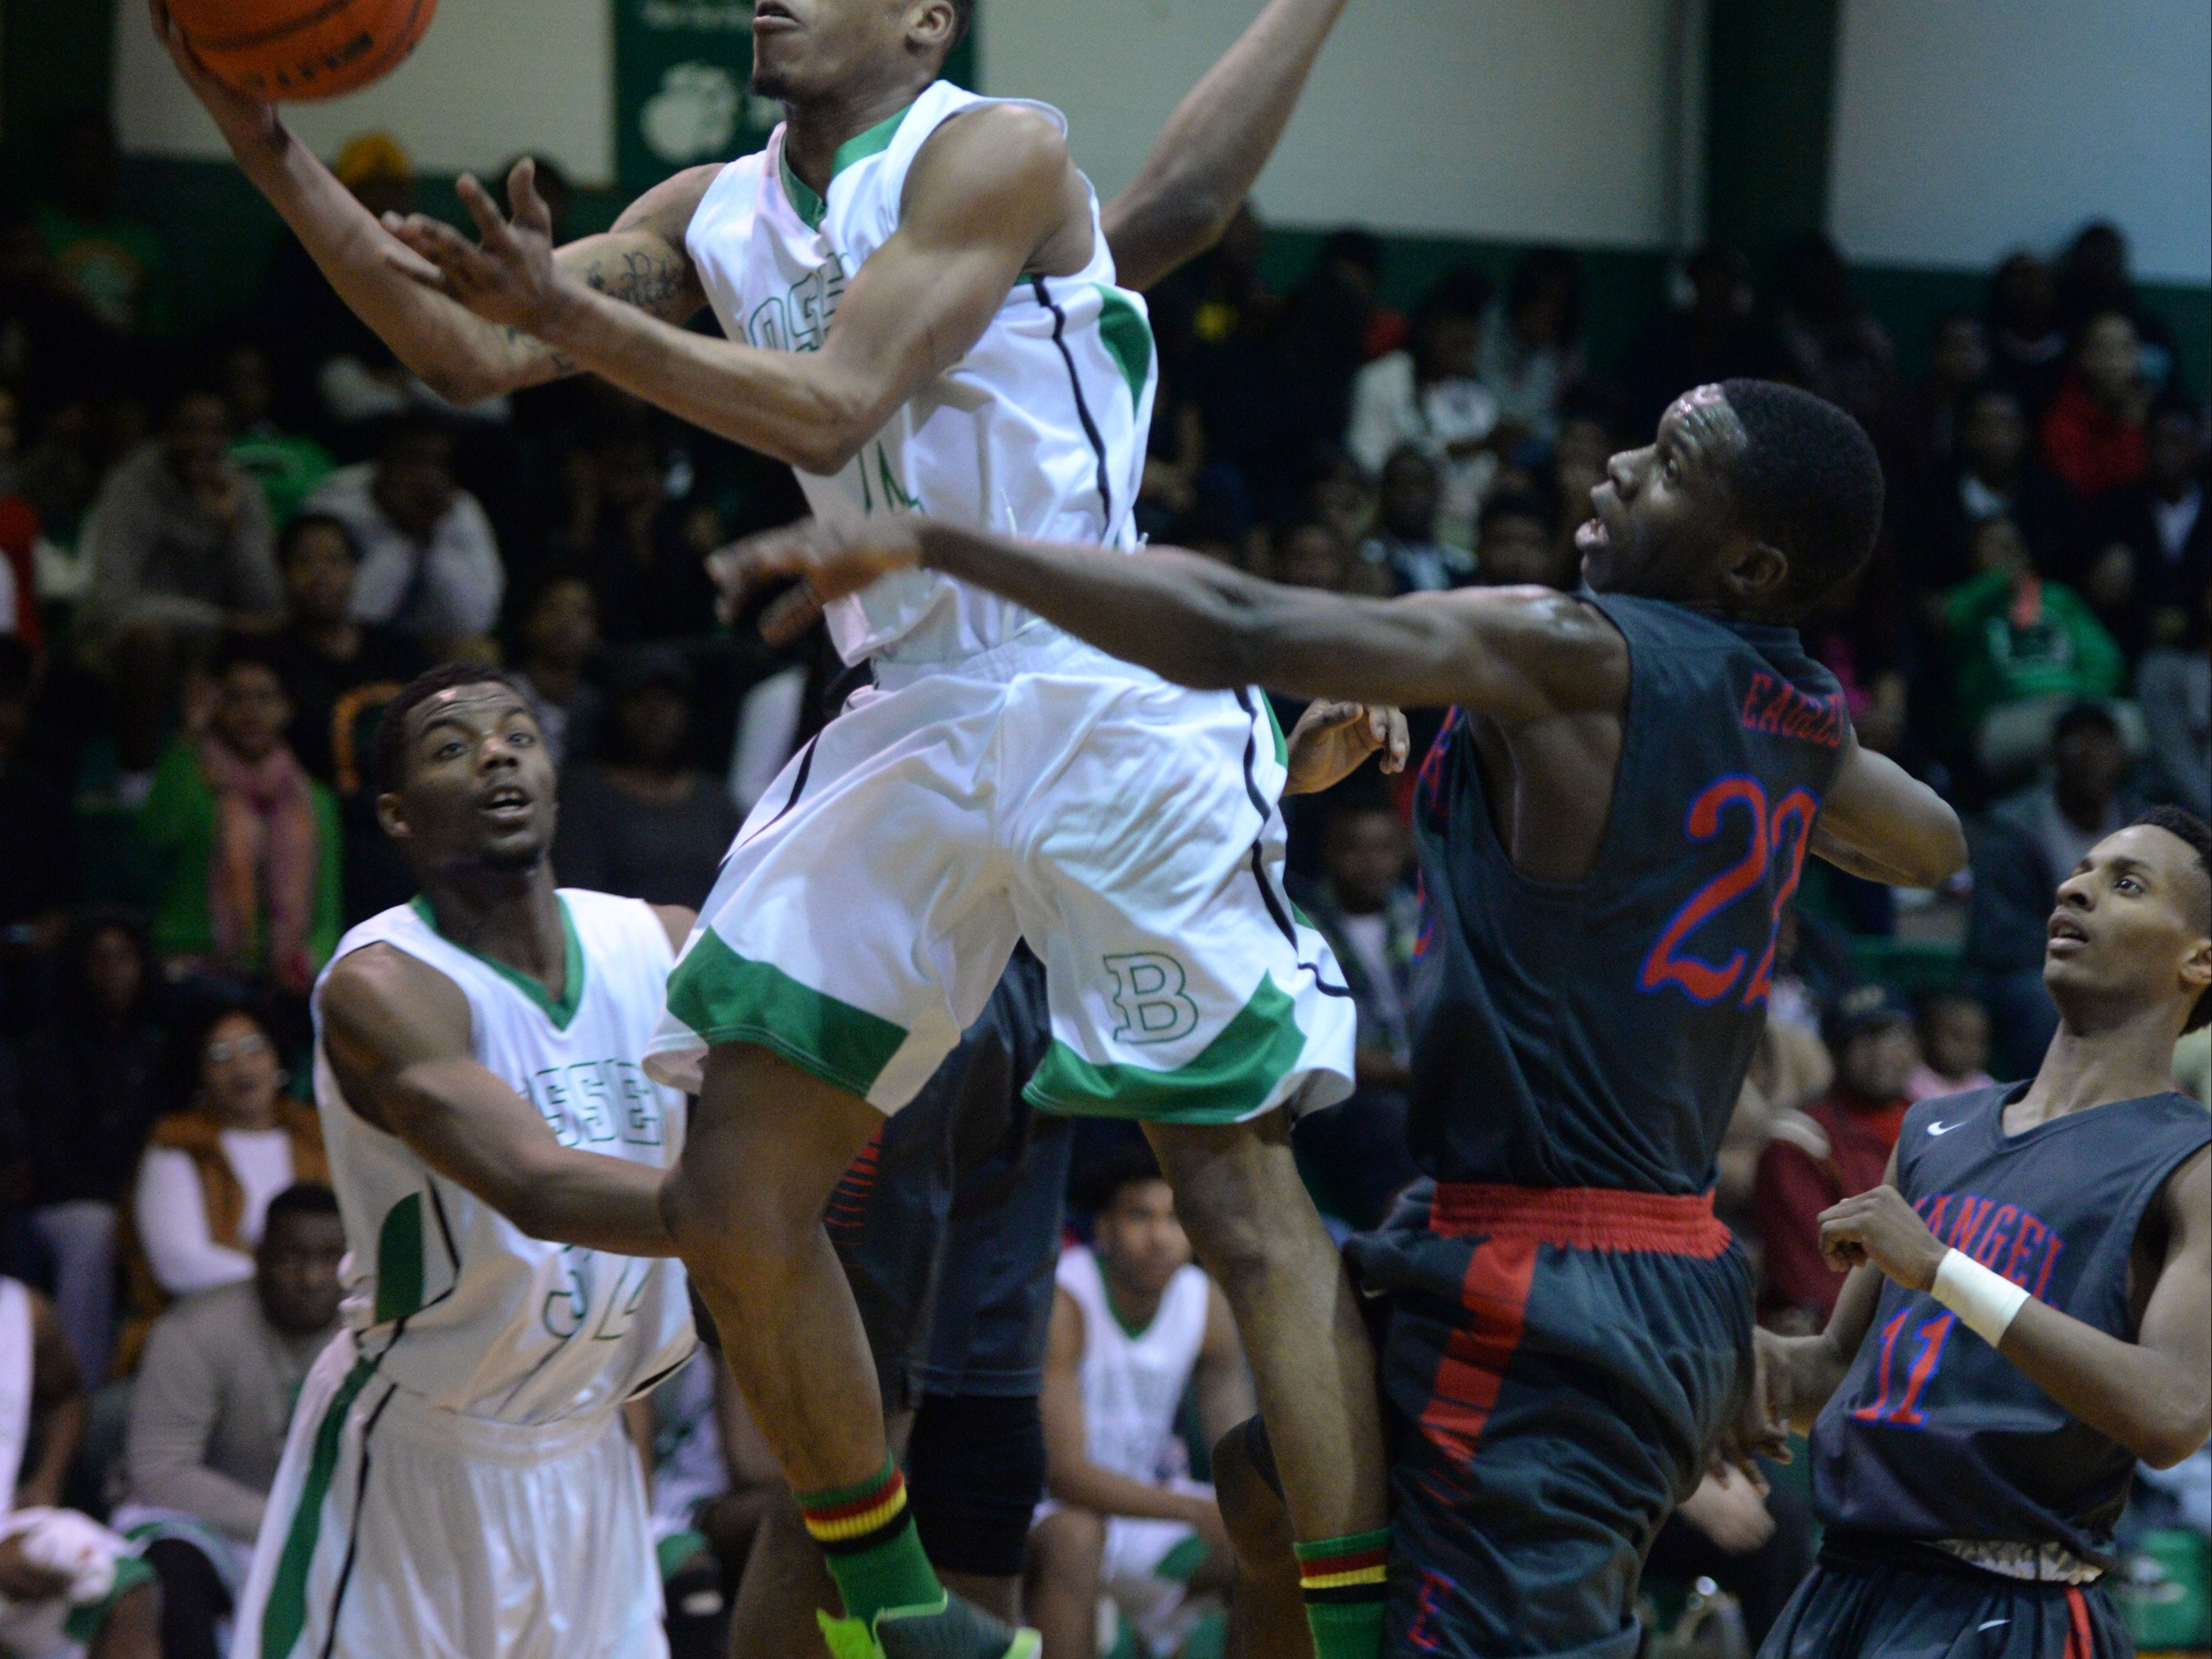 Bossier's Kentrell Hardey splits a pair of Evangel defenders, misses the layup but draws a foul during Bossier's 54-37 win Tuesday night. With Bossier win over Evangel they now force a tie for the 1-3A title.